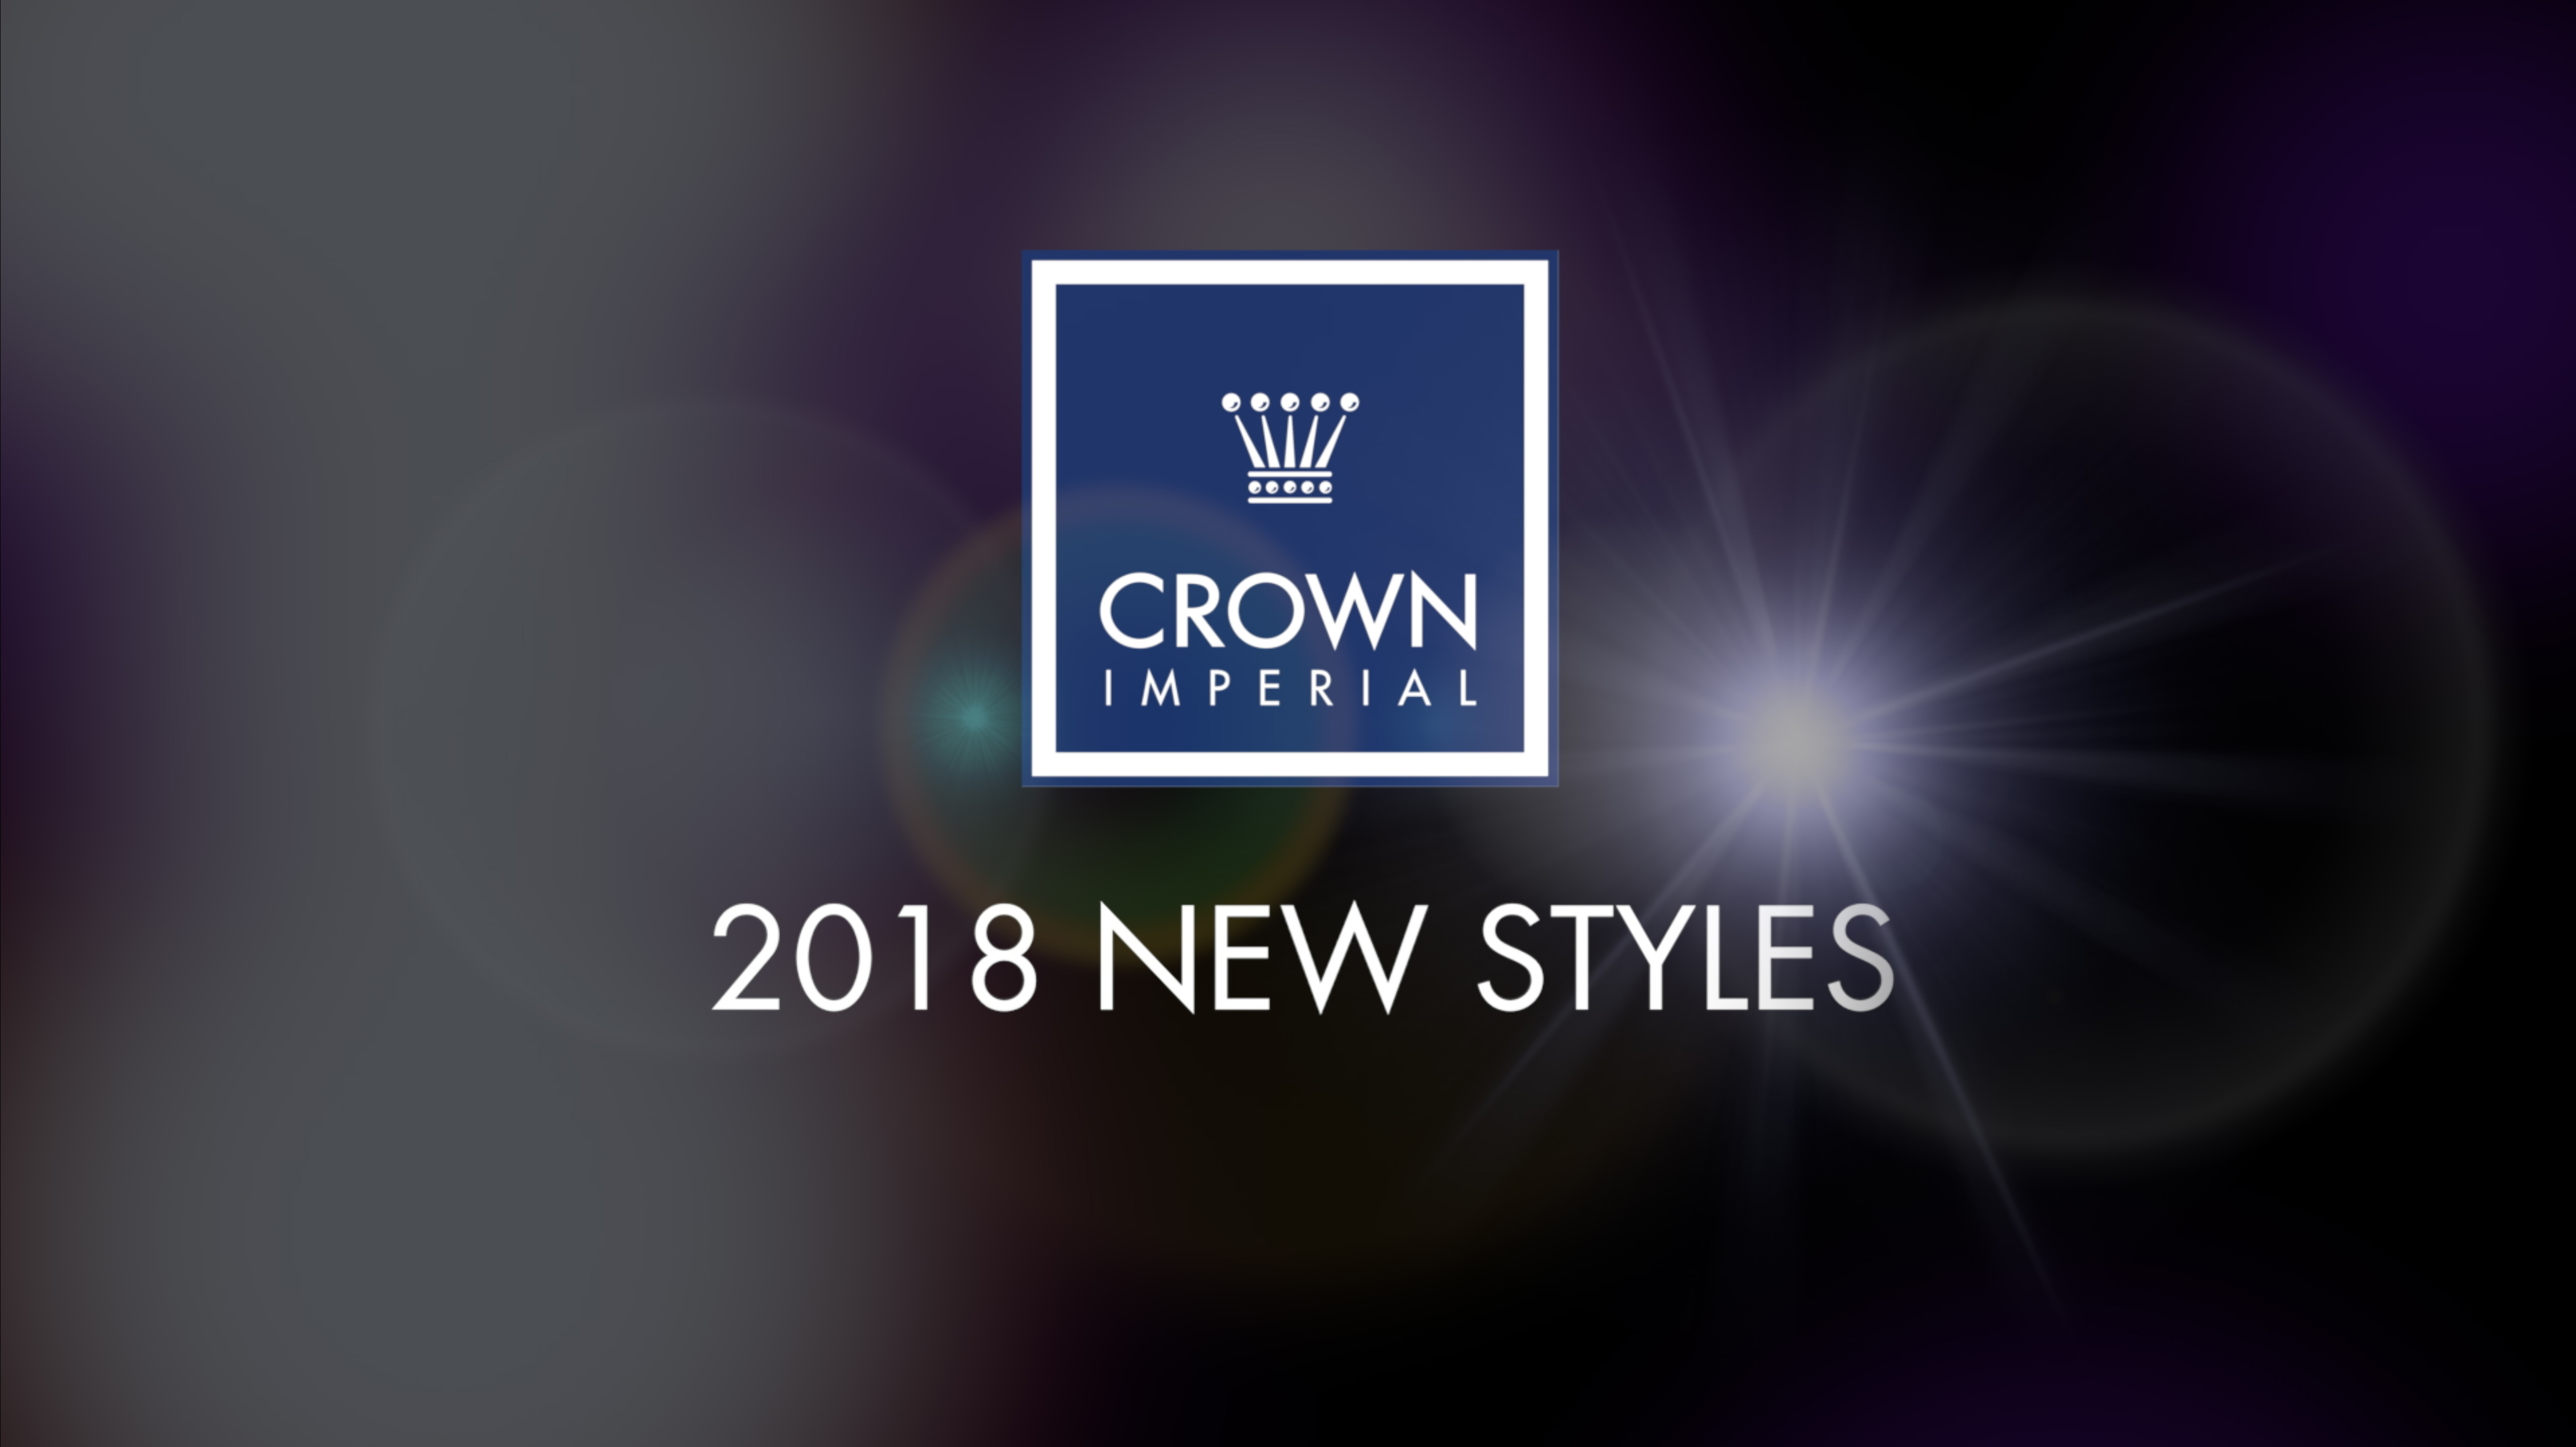 CROWN IMPERIAL 2018 NEW STYLES